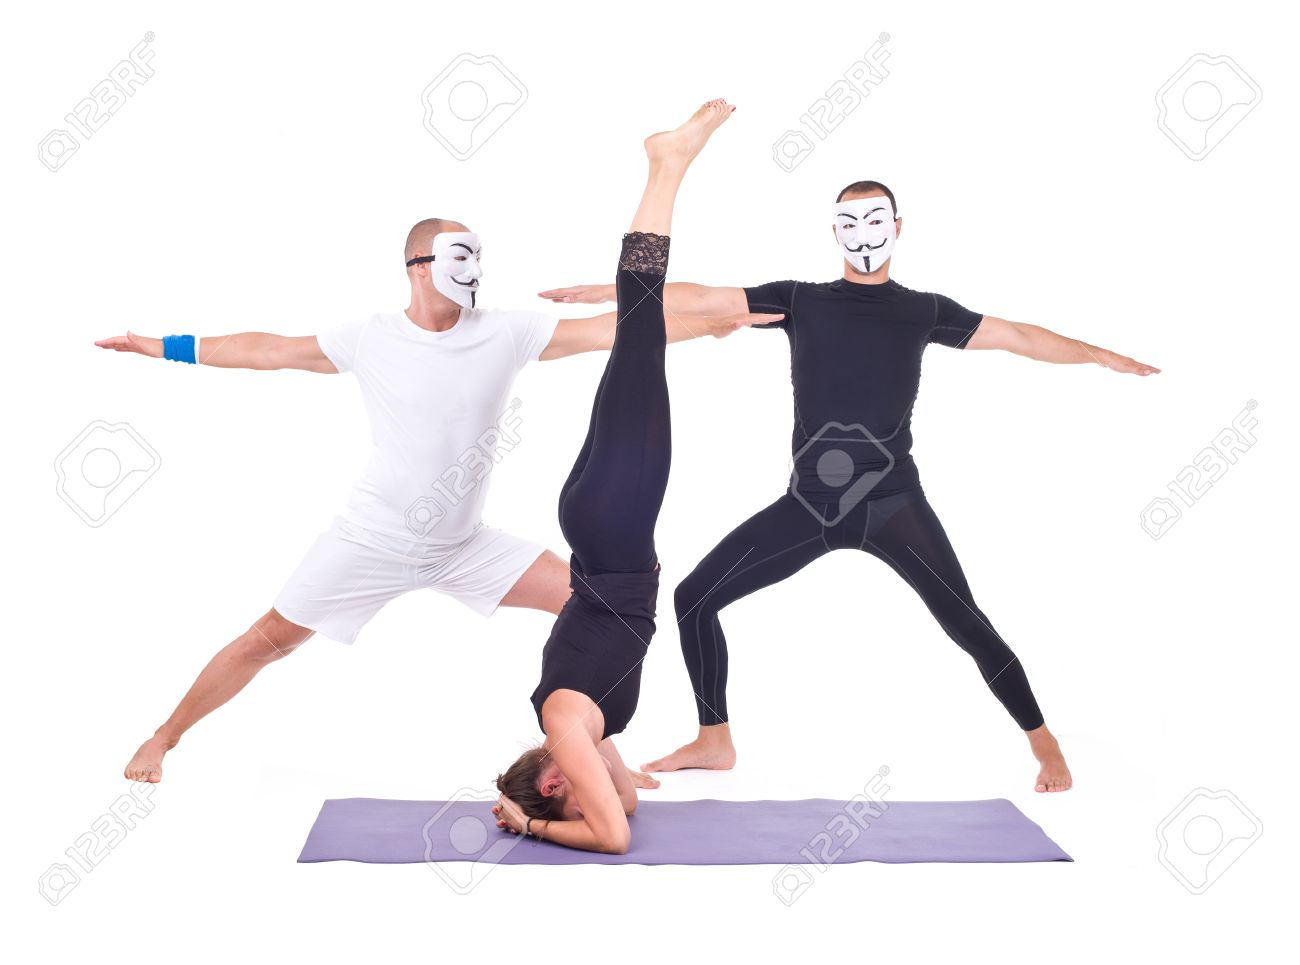 The Two Masked Men And Girl Doing Yoga Exercises In Studio On